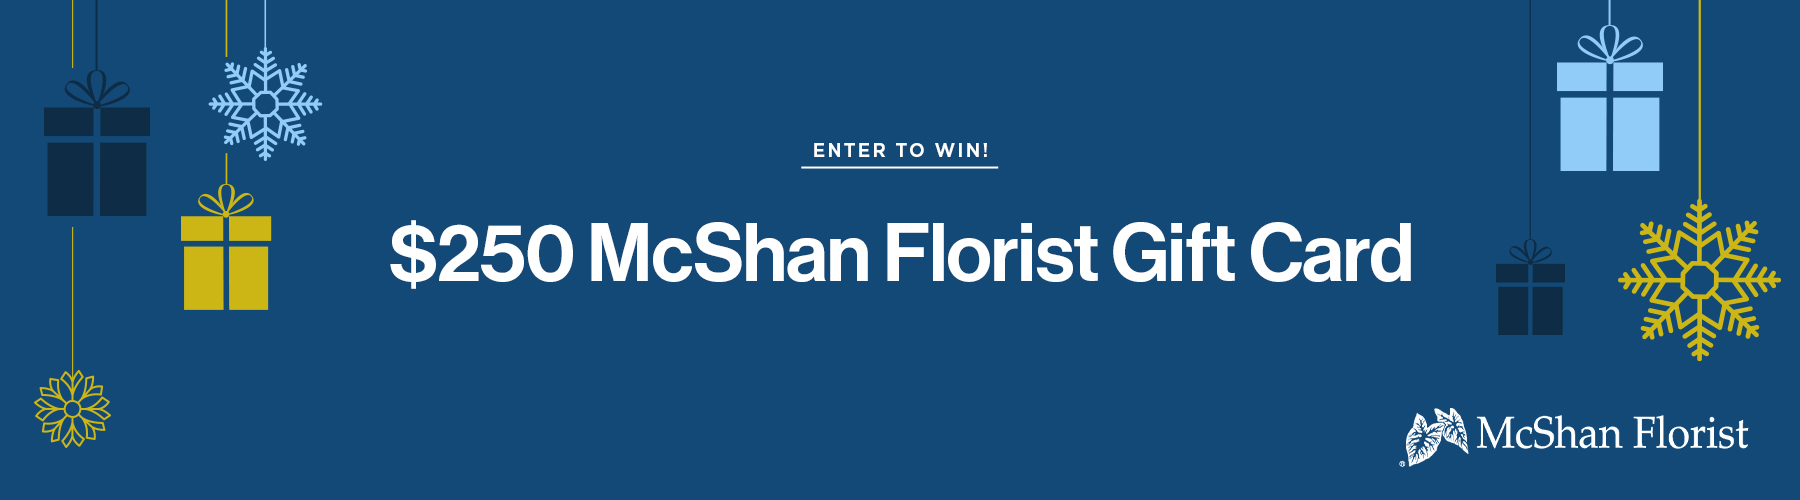 2020 Holiday Giveaways McShan